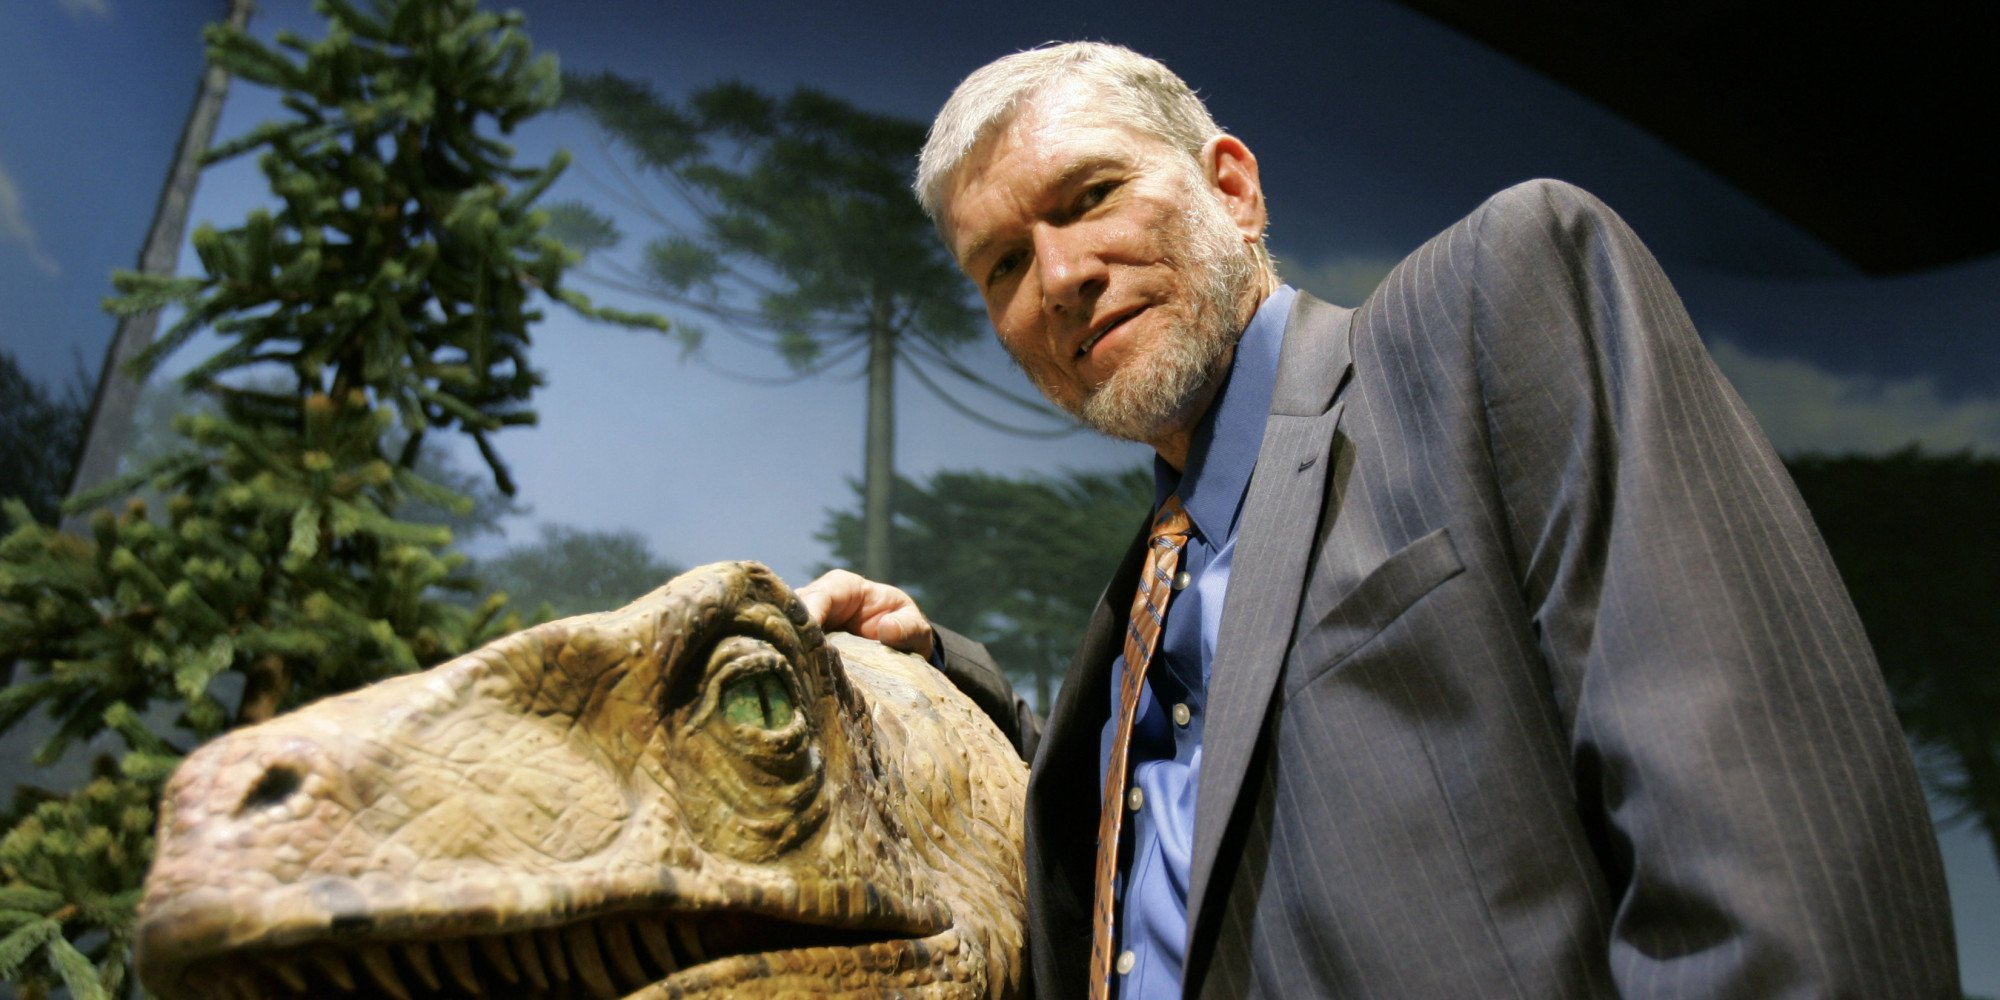 Ken Ham posing next to a dinosaur exhibit